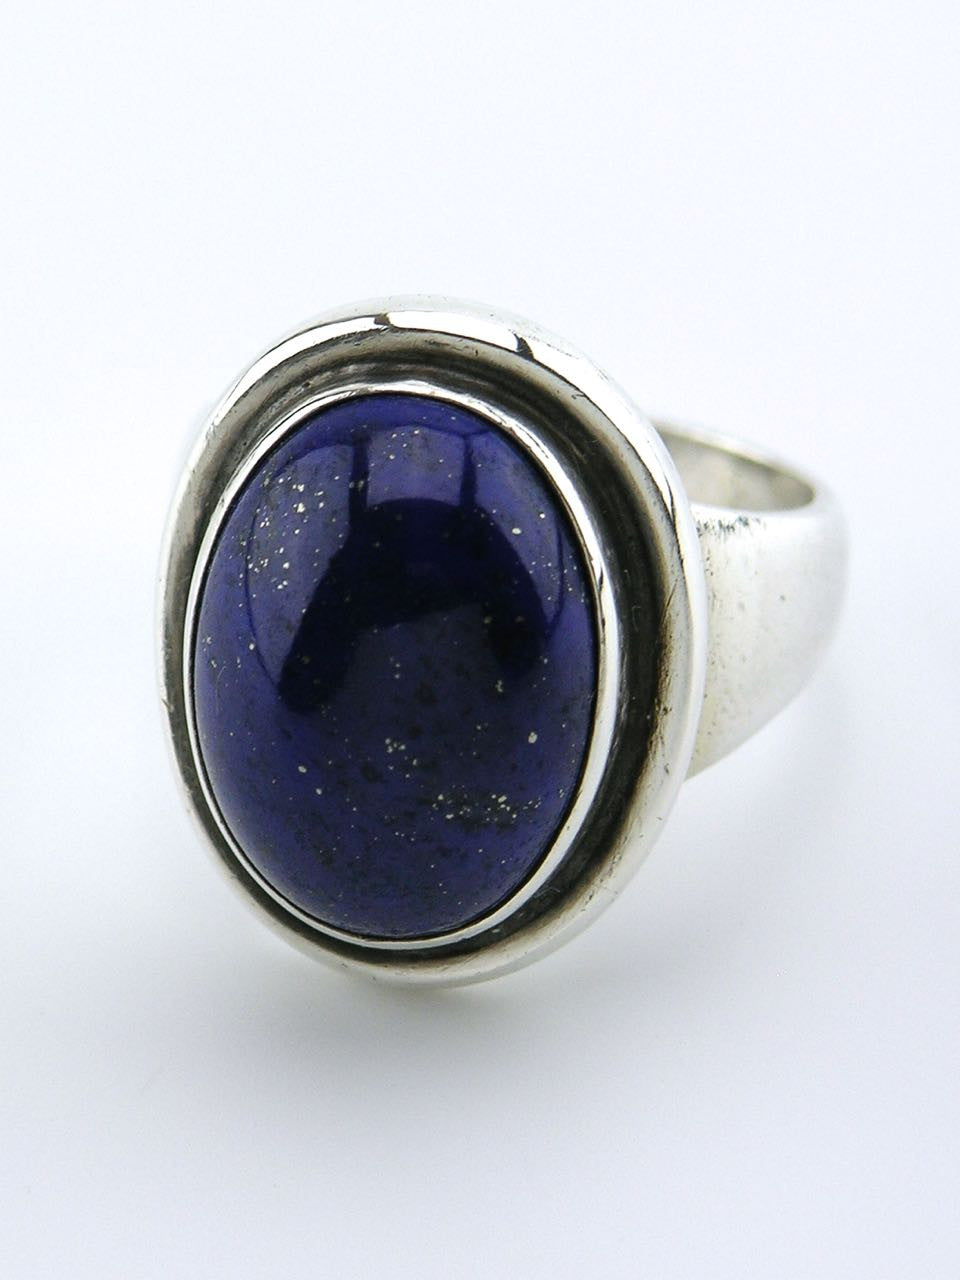 Georg Jensen silver and oval lapis lazuli ring - design 46A